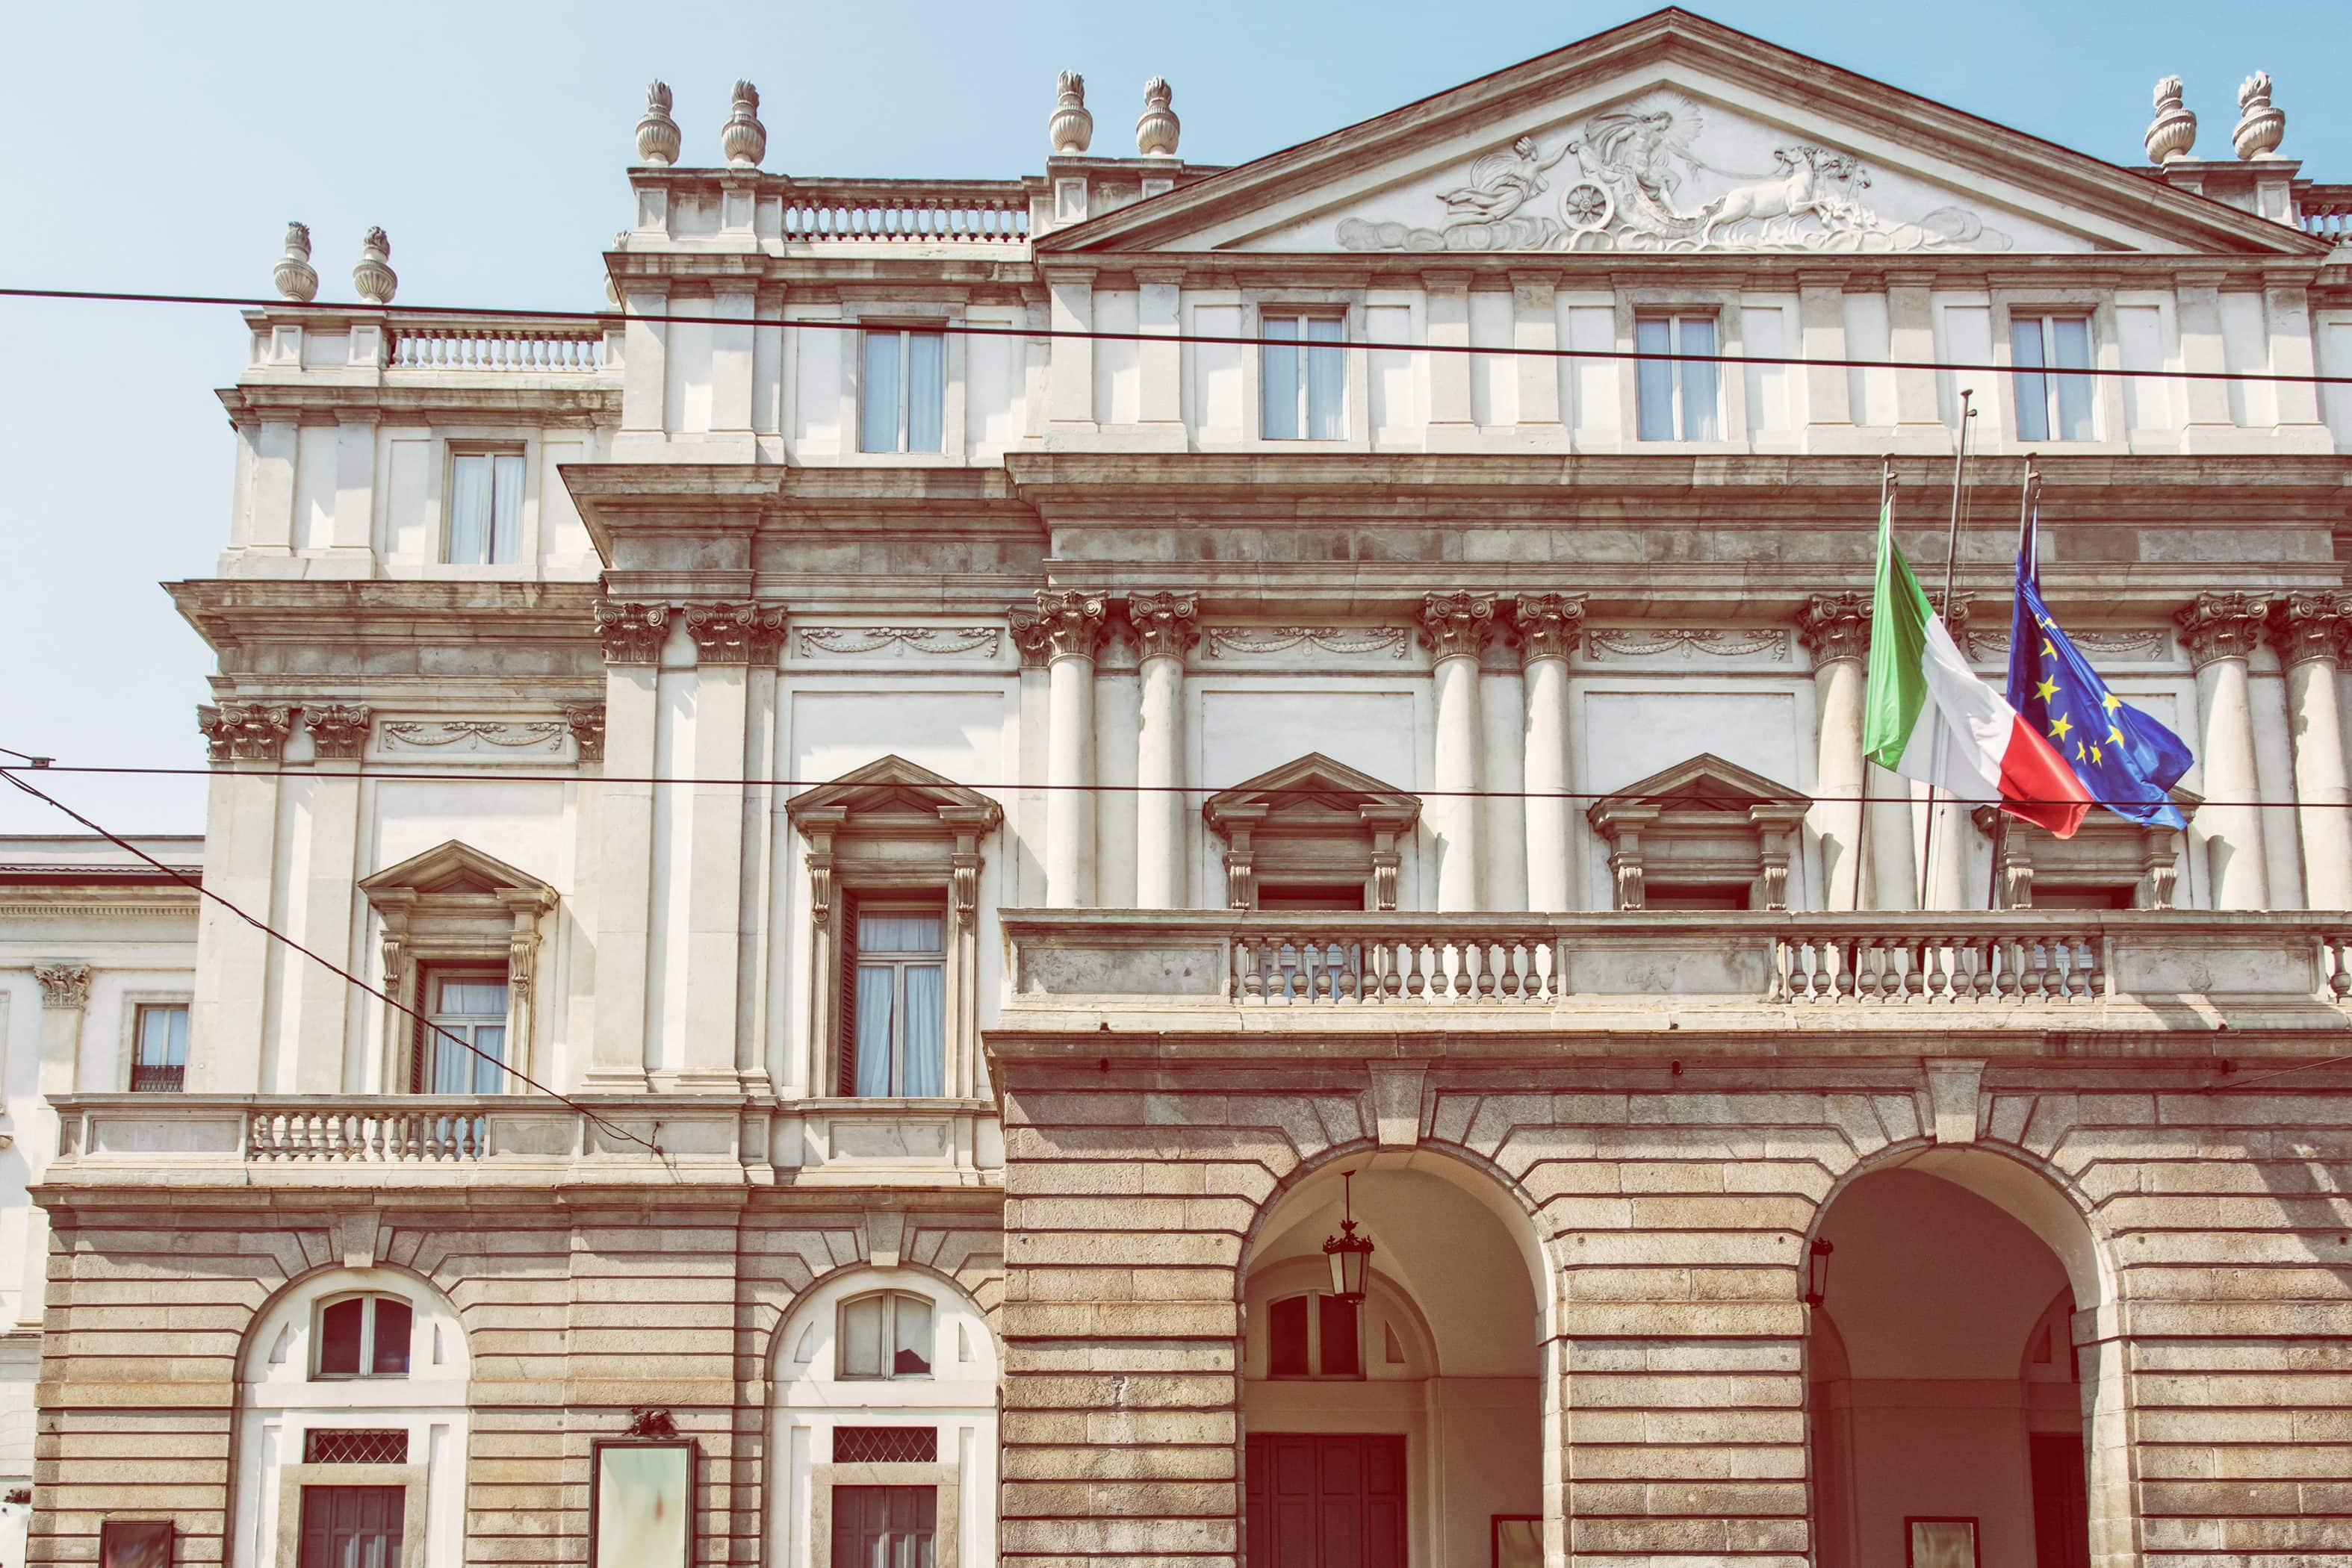 The front facade of the famous La Scala Opera House